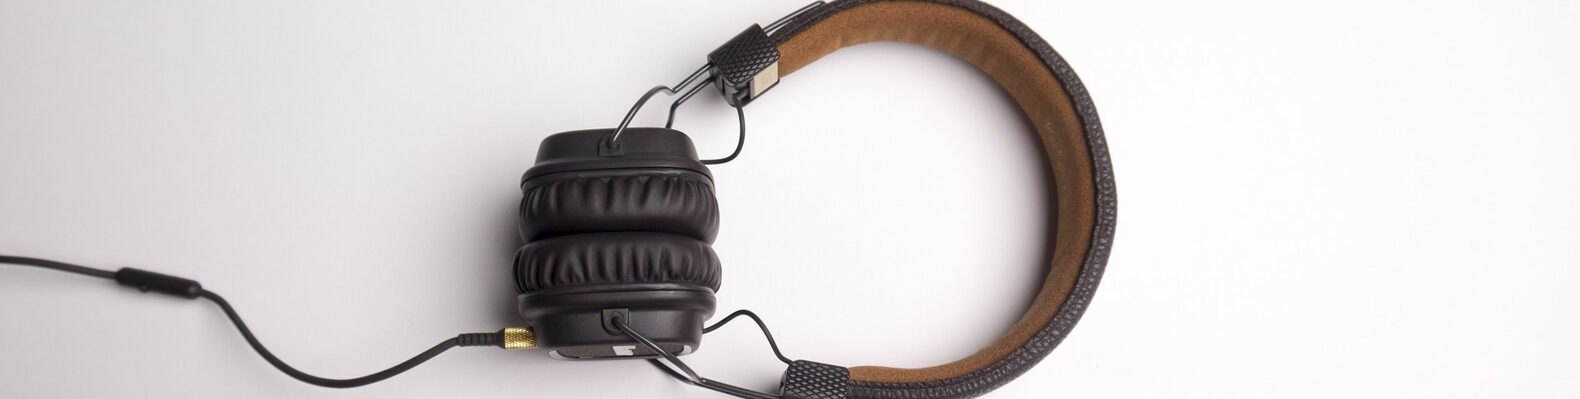 black and brown headphones on white background